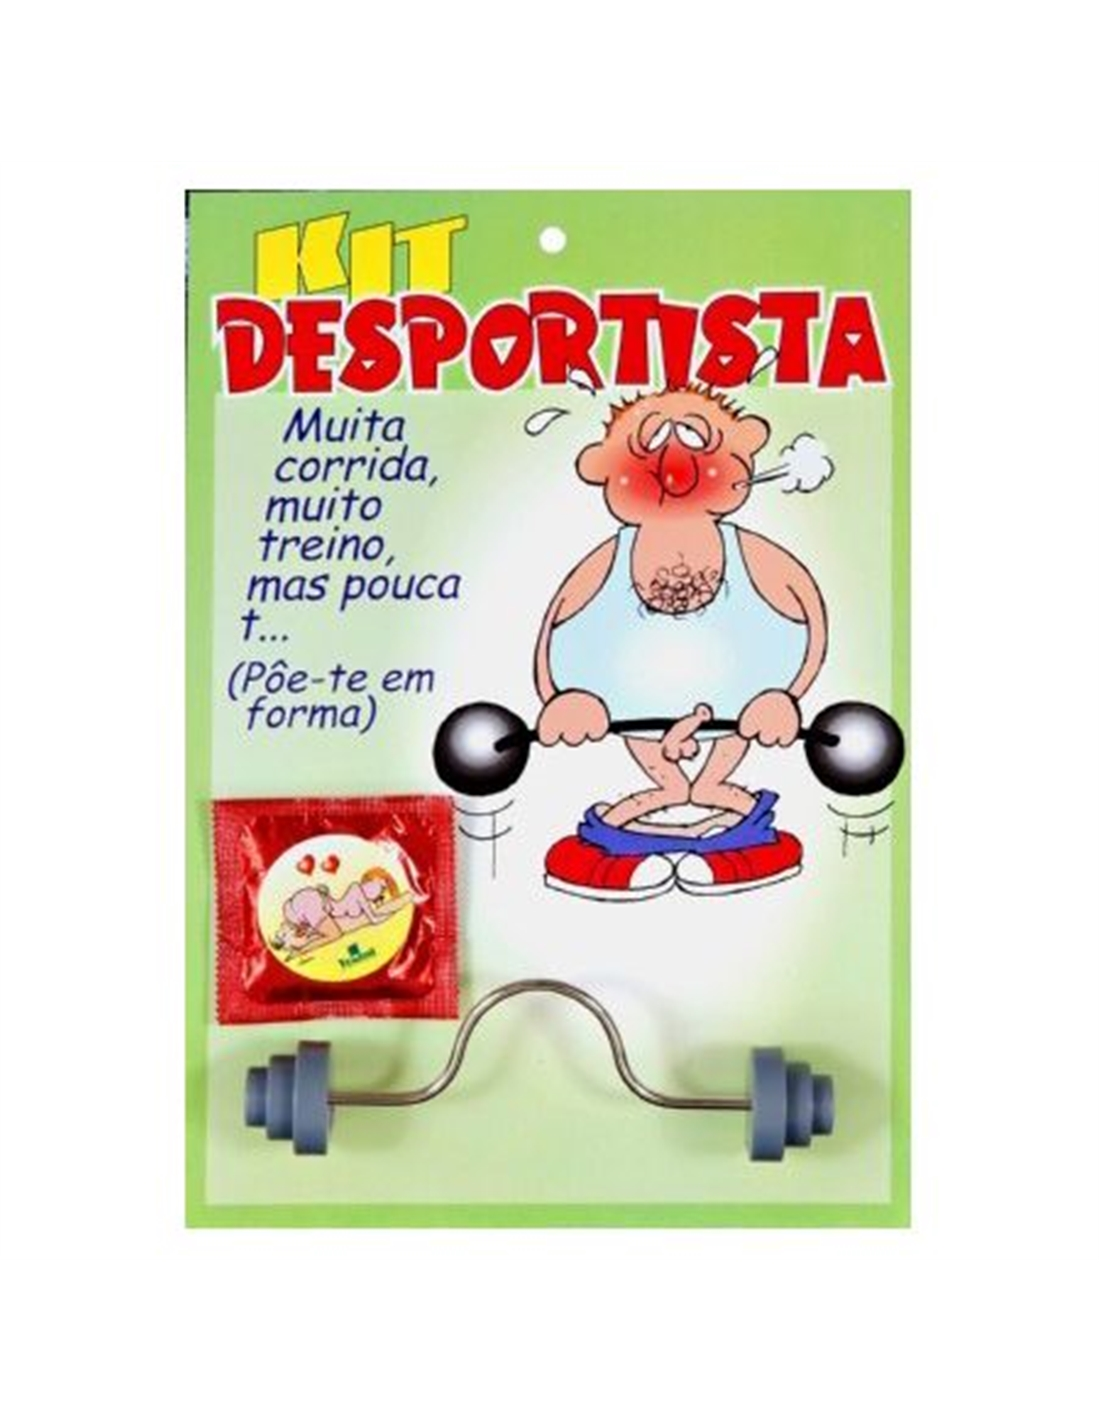 Kit Desportista - DO29005996